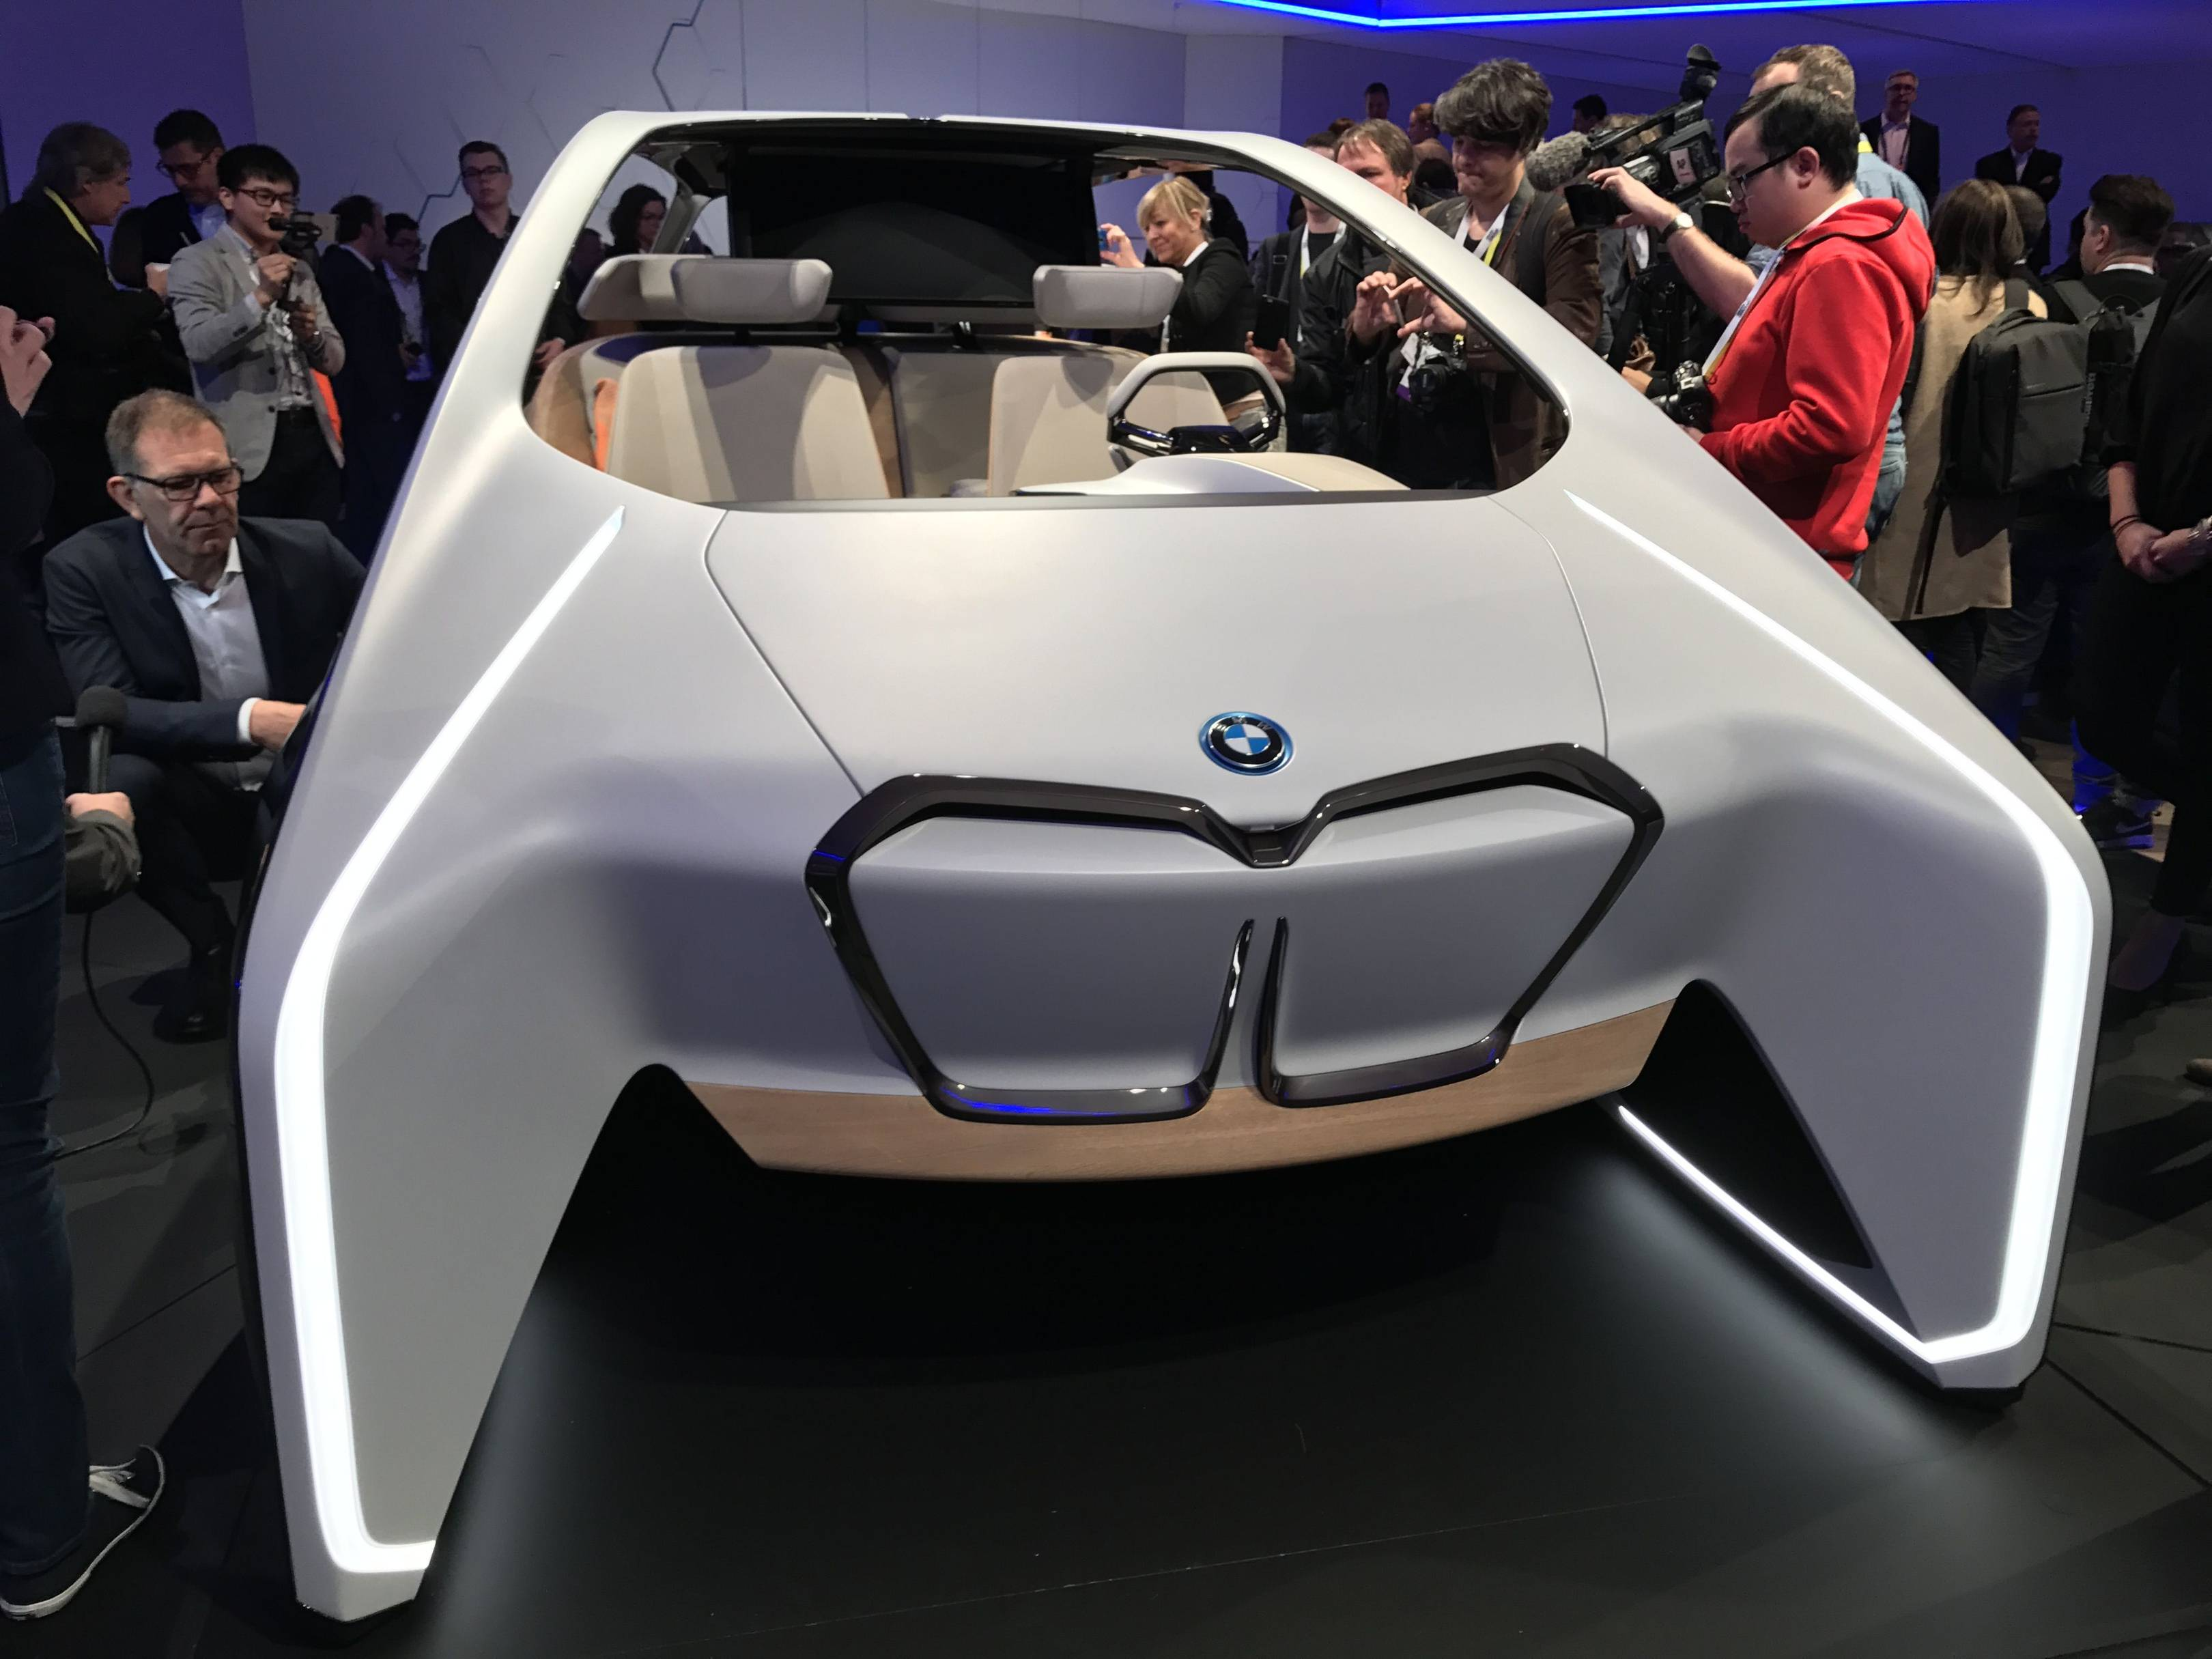 Bmw And Intel Will Have Fleet Of Self Driving Cars Next Year Wired Uk